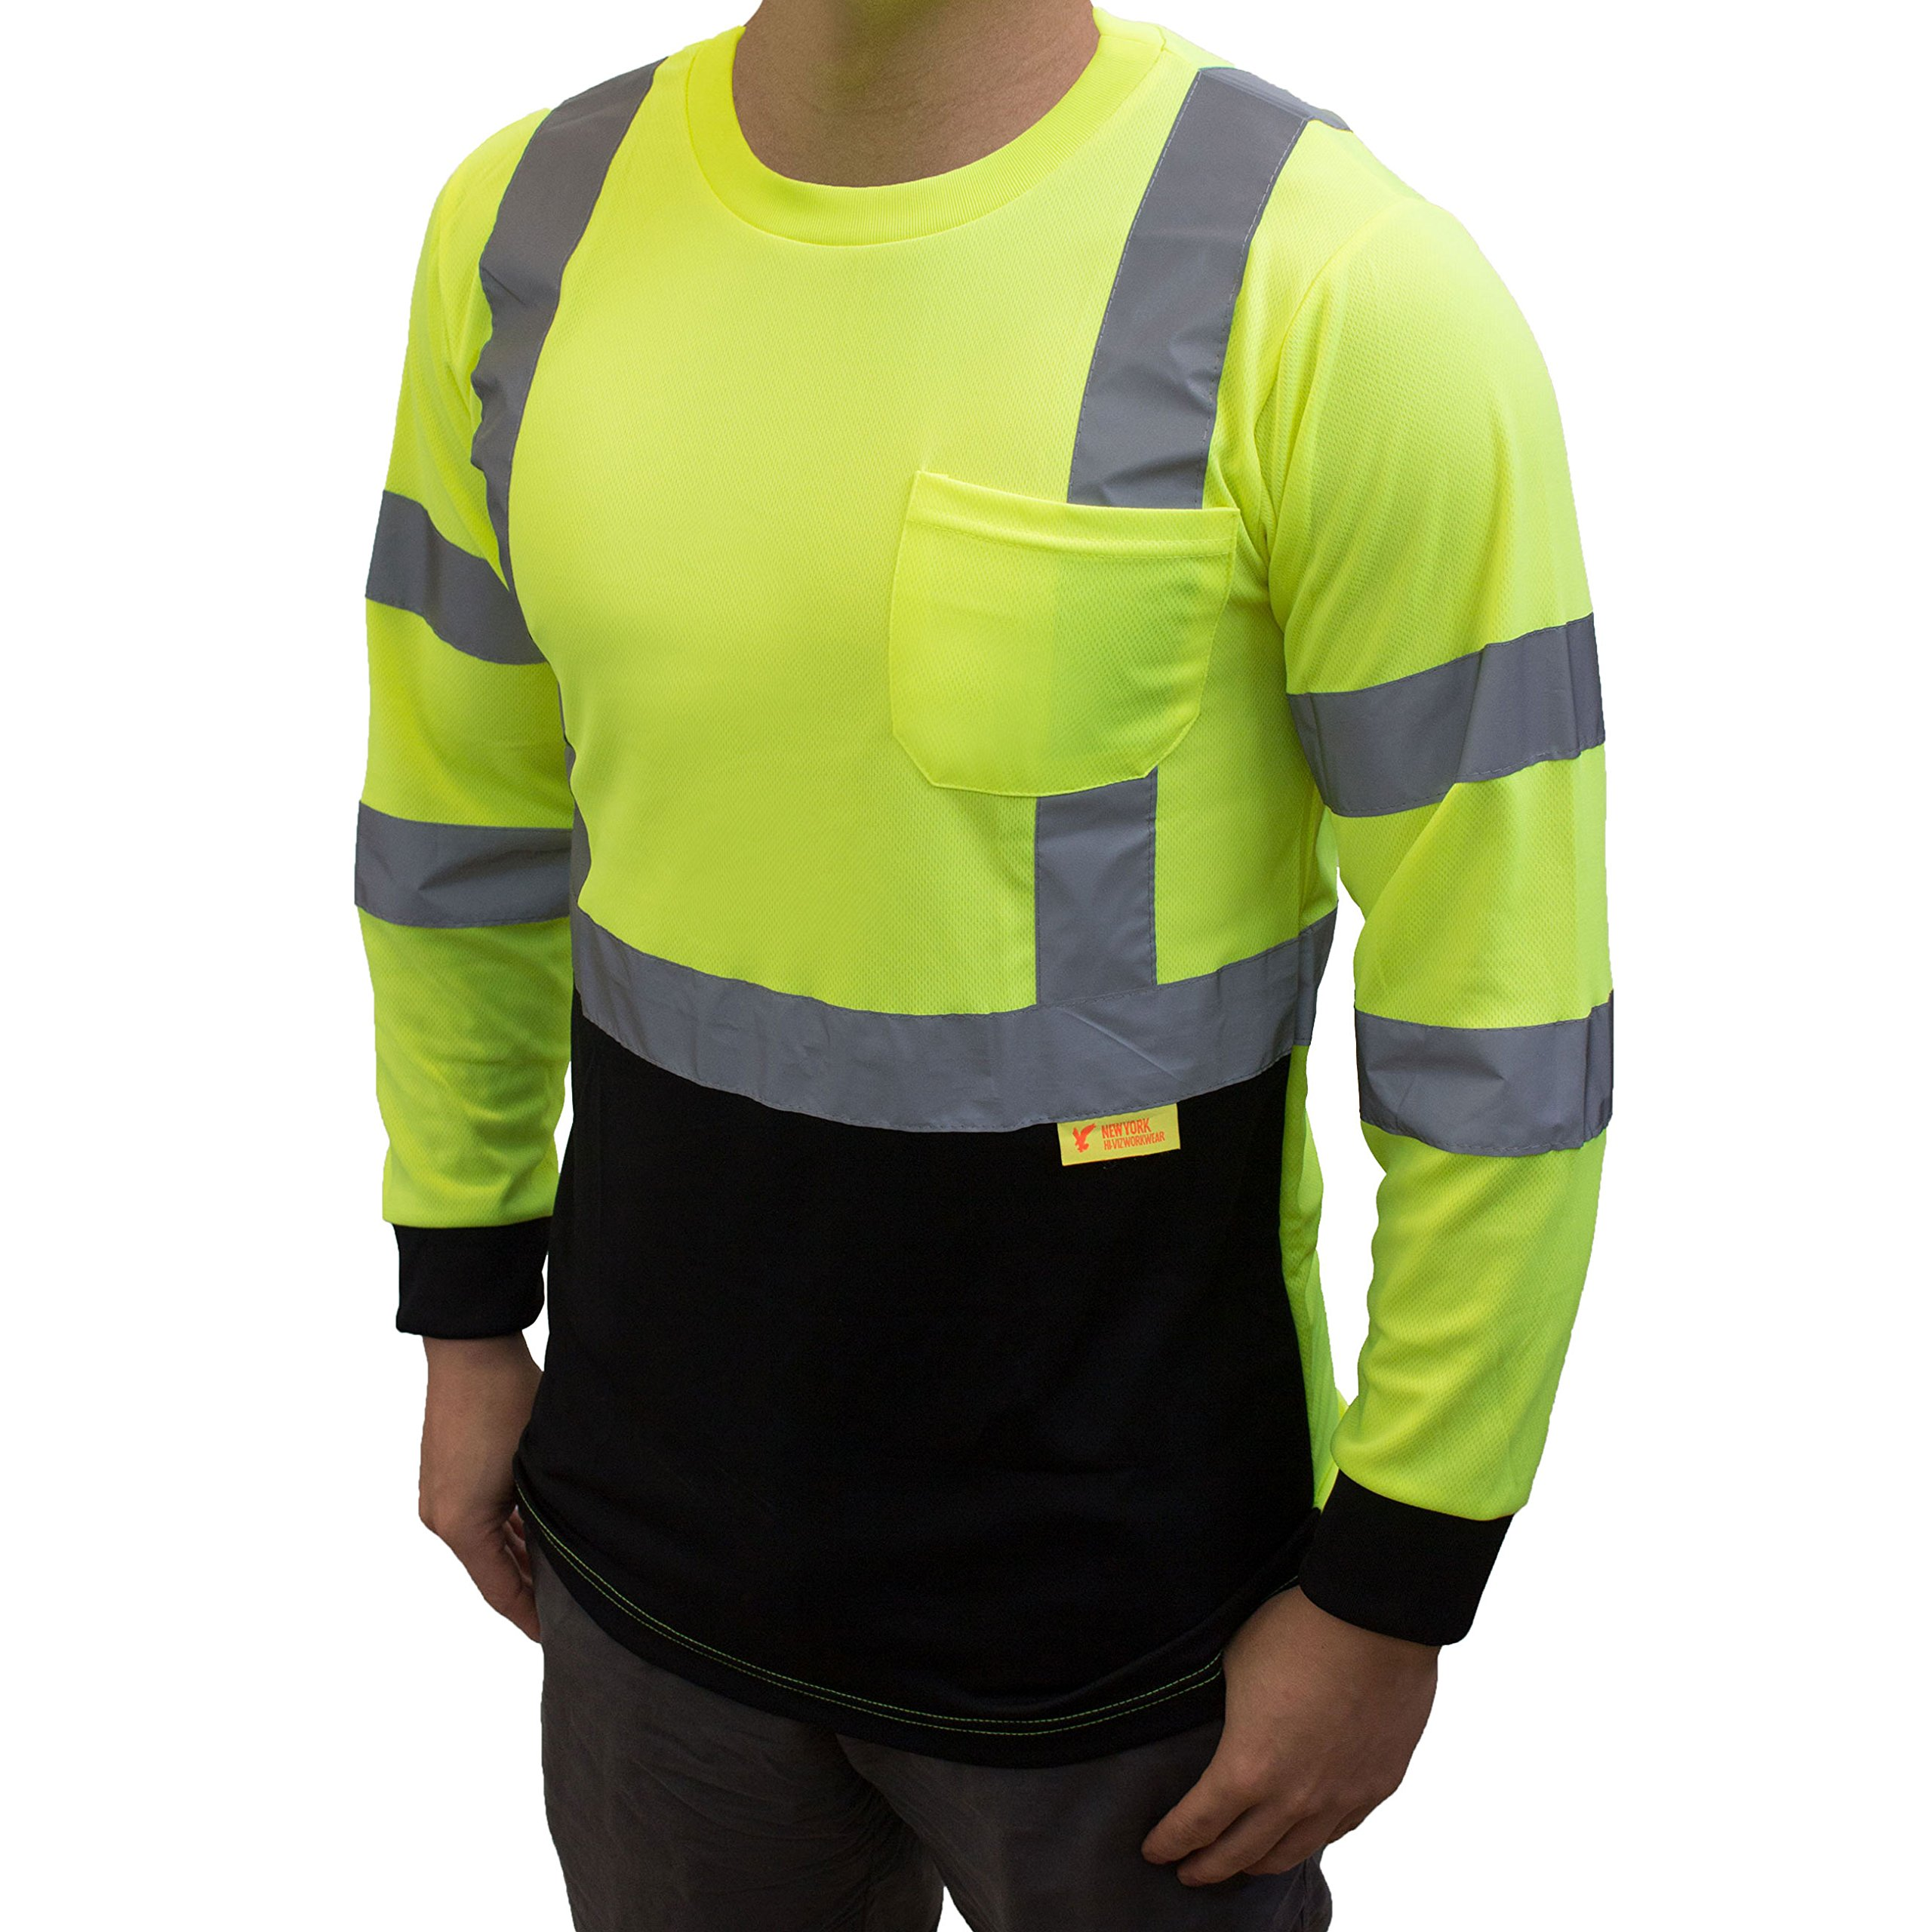 NY BFL8712 High-Visibility Class 3 T Shirt with Moisture Wicking Mesh Birdseye, Black Bottom (Large, Green)